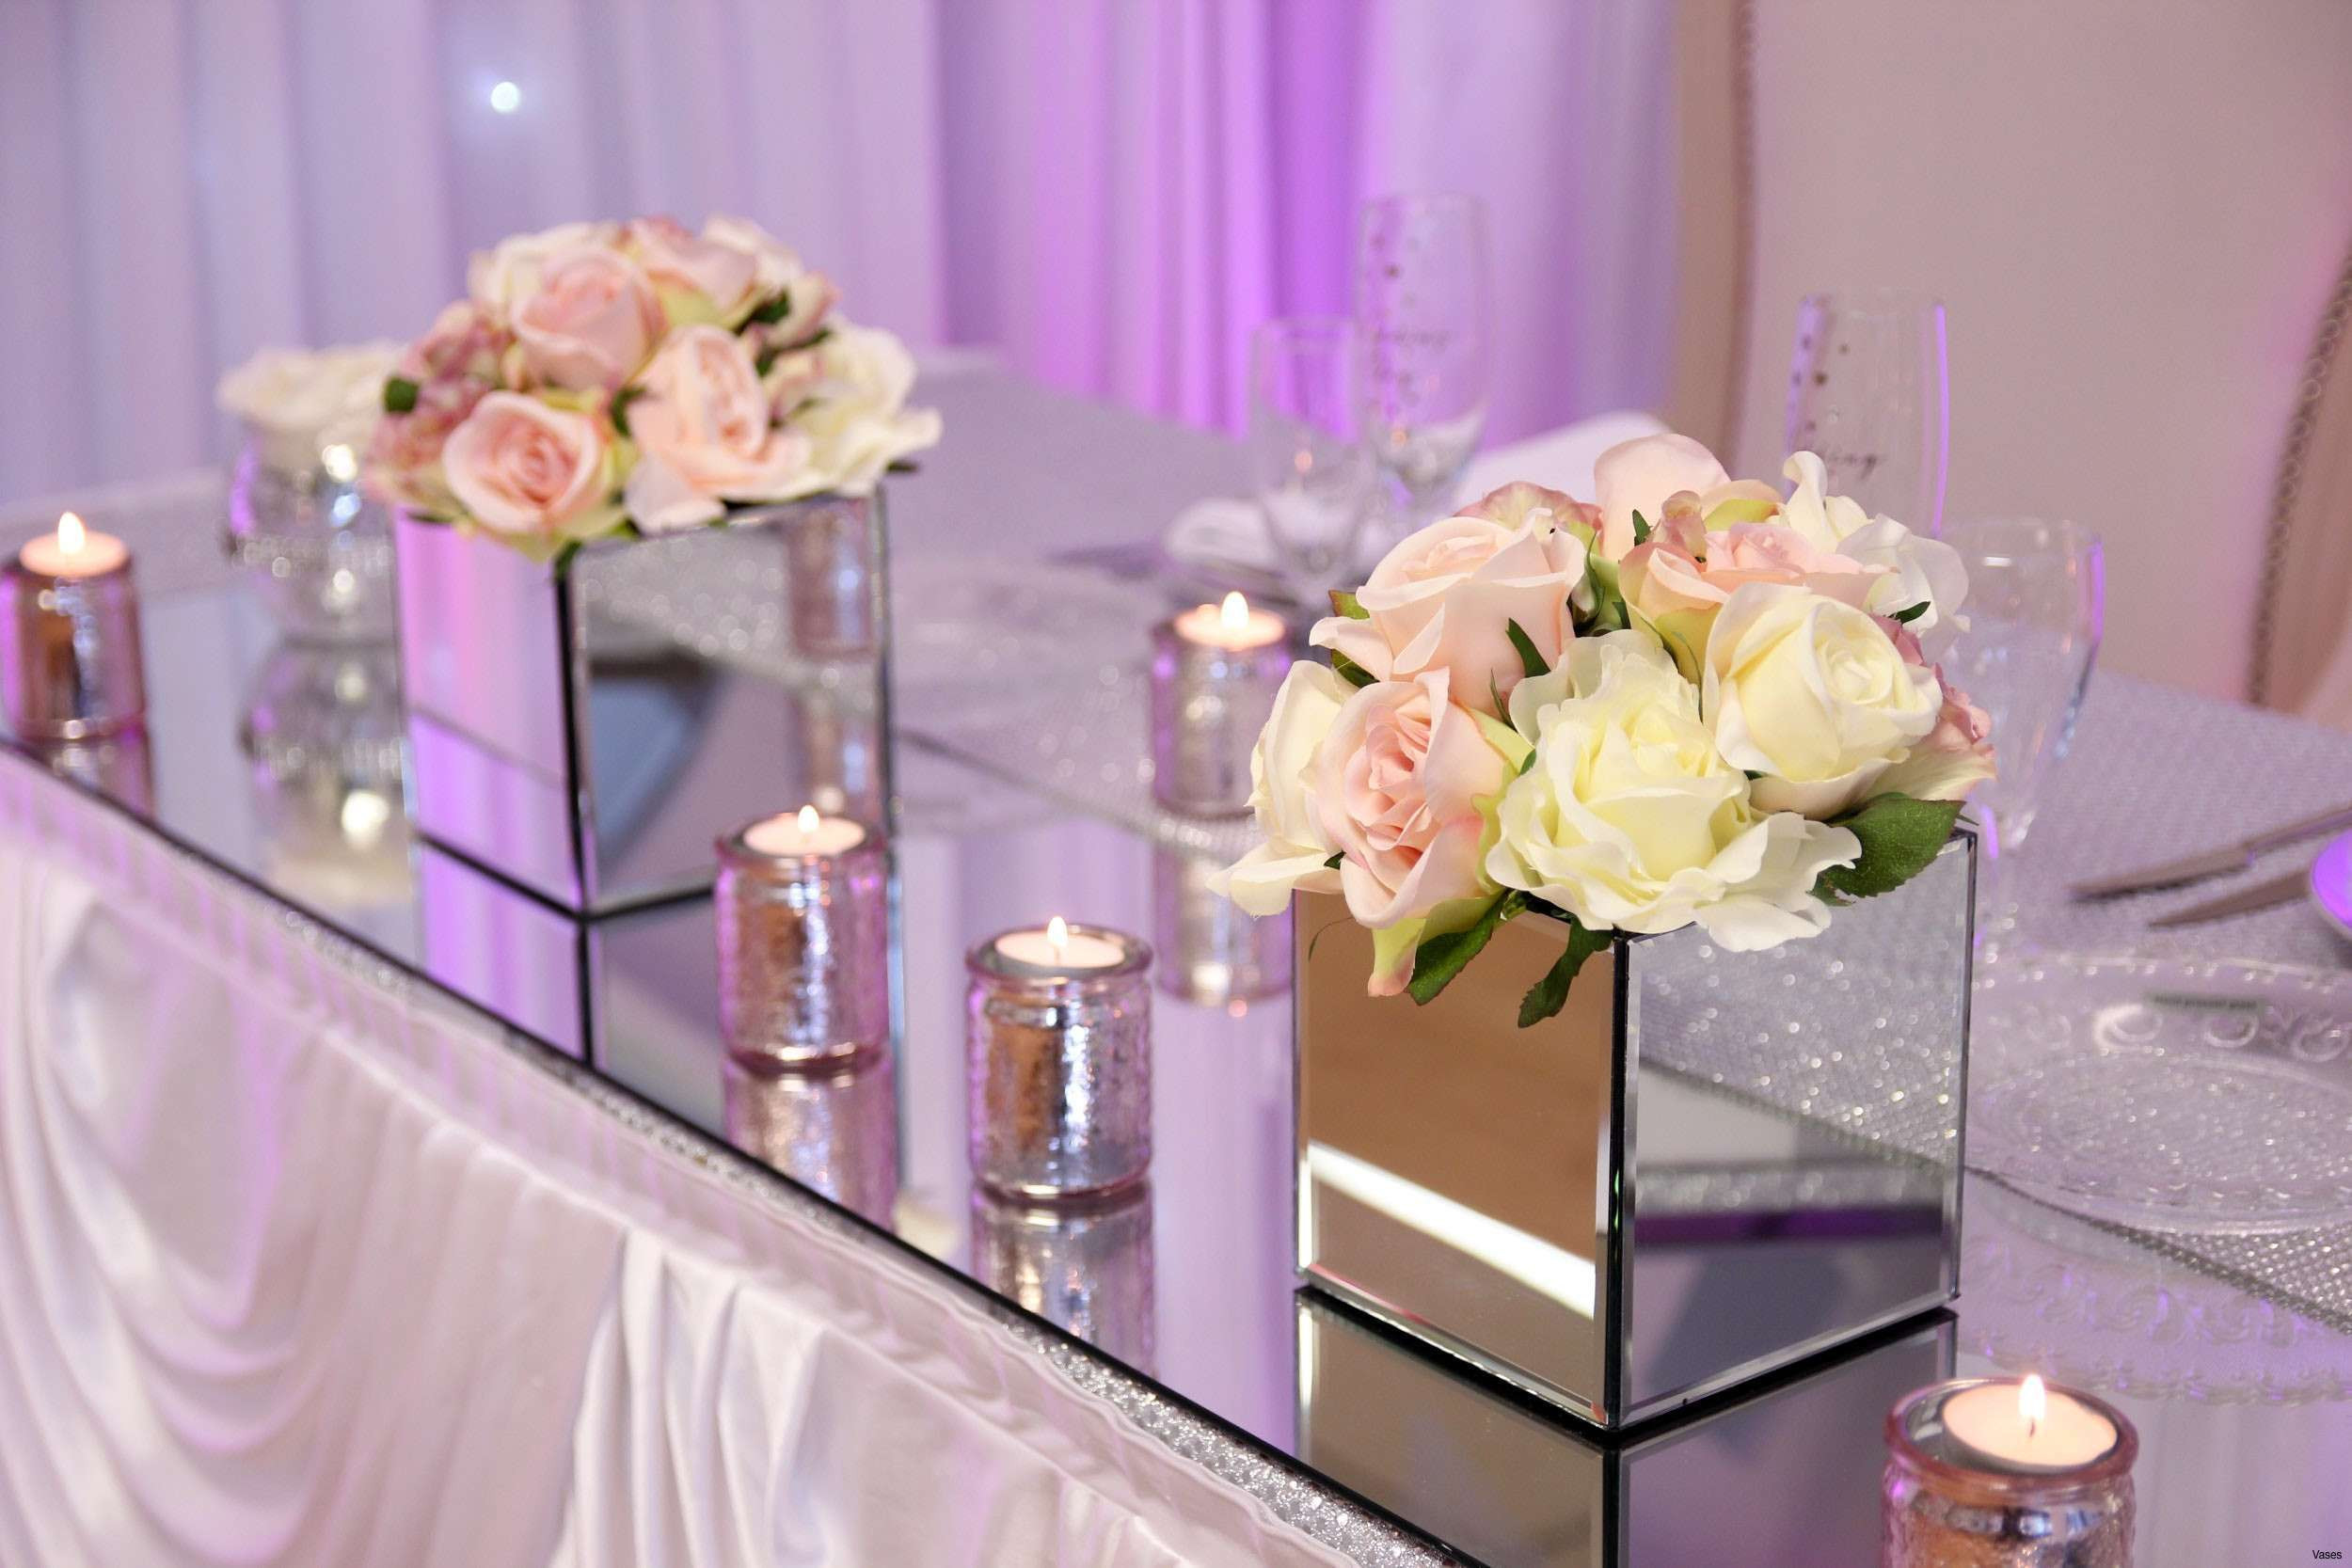 light pink glass vase of 26 luxury wedding centerpieces ideas sokitchenlv for wedding centerpieces ideas lovely mirrored square vase 3h vases mirror table decorationi 0d weddings of 26